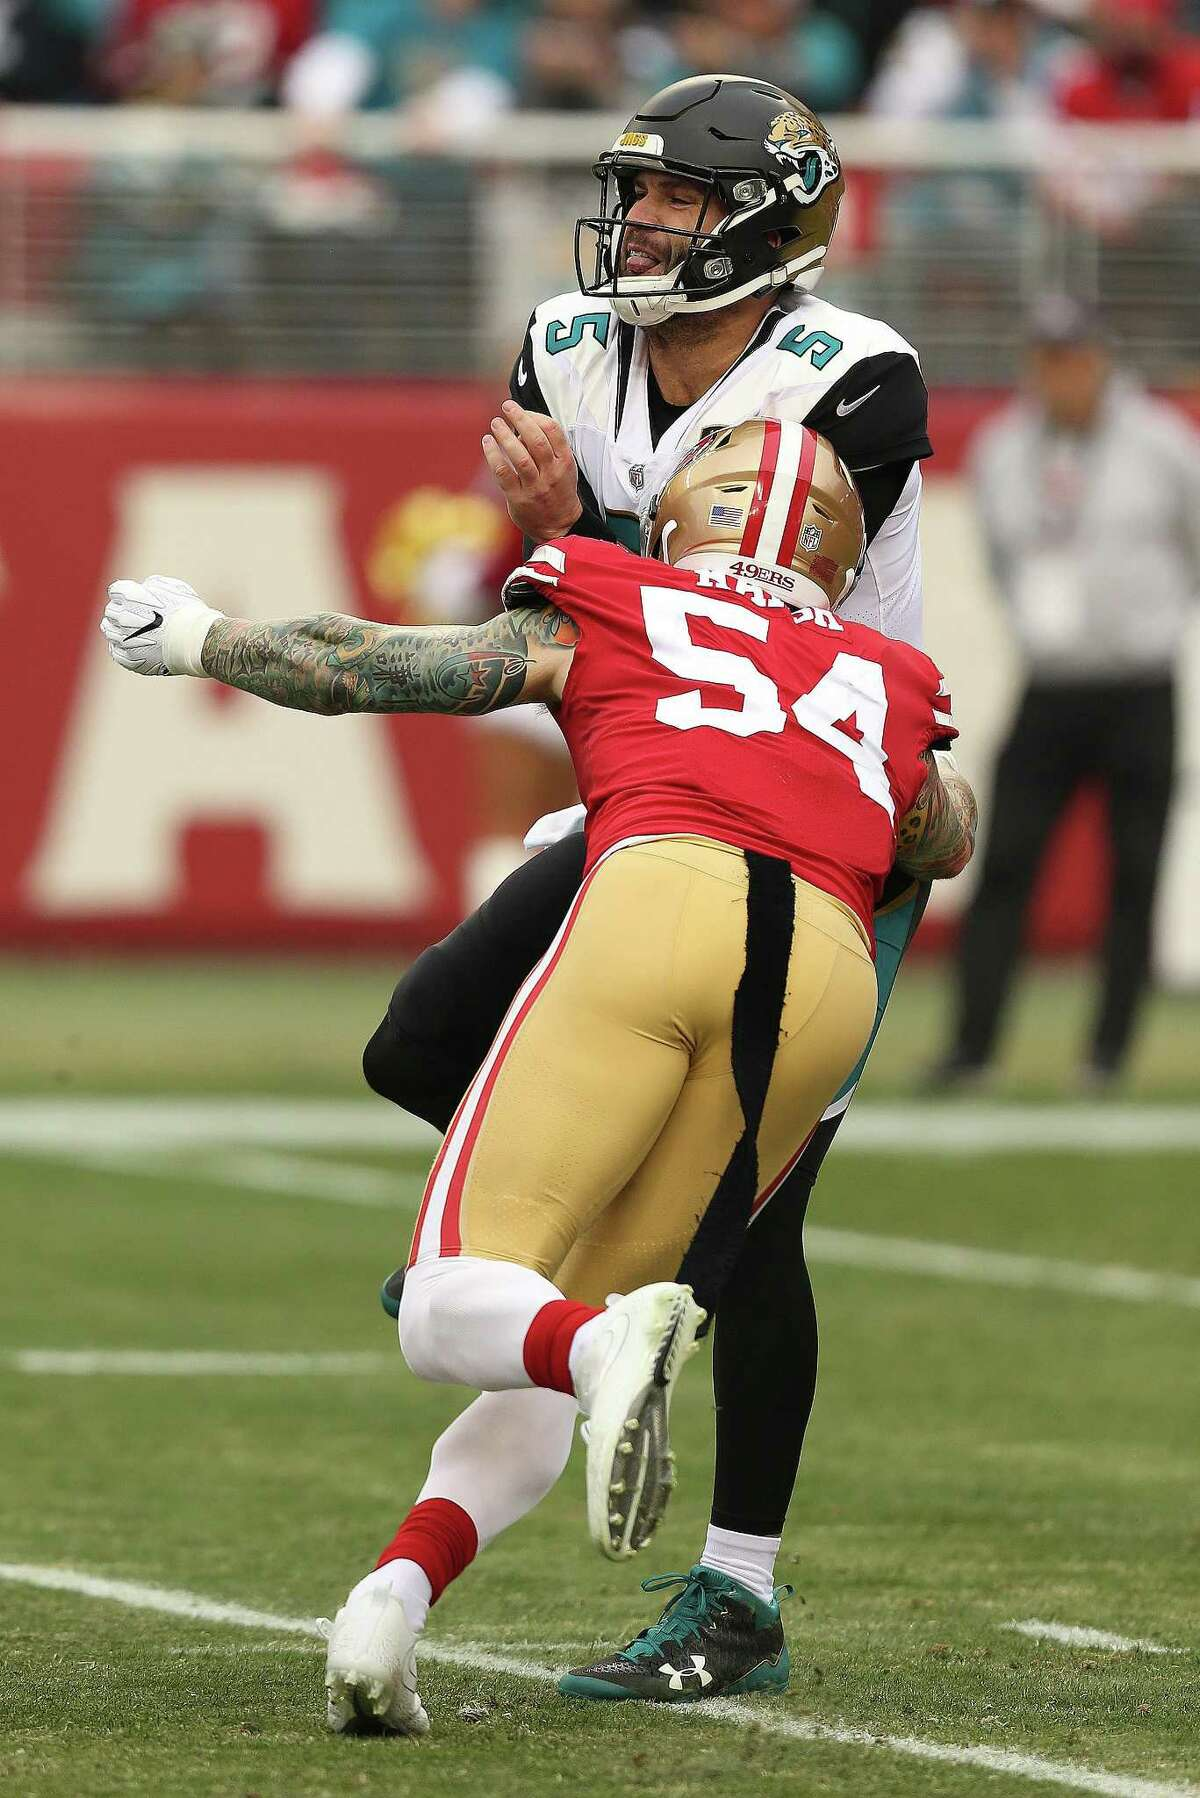 SANTA CLARA, CA - DECEMBER 24: Jacksonville Jaguars quarterback Blake Bortles (5) takes a hit from Cassius Marsh after throwing a pass during an NFL game against the San Francisco 49ers on Sunday December 24, 2017, at Levi's Stadium in Santa Clara, CA. (Photo by Daniel Gluskoter/Icon Sportswire via Getty Images)